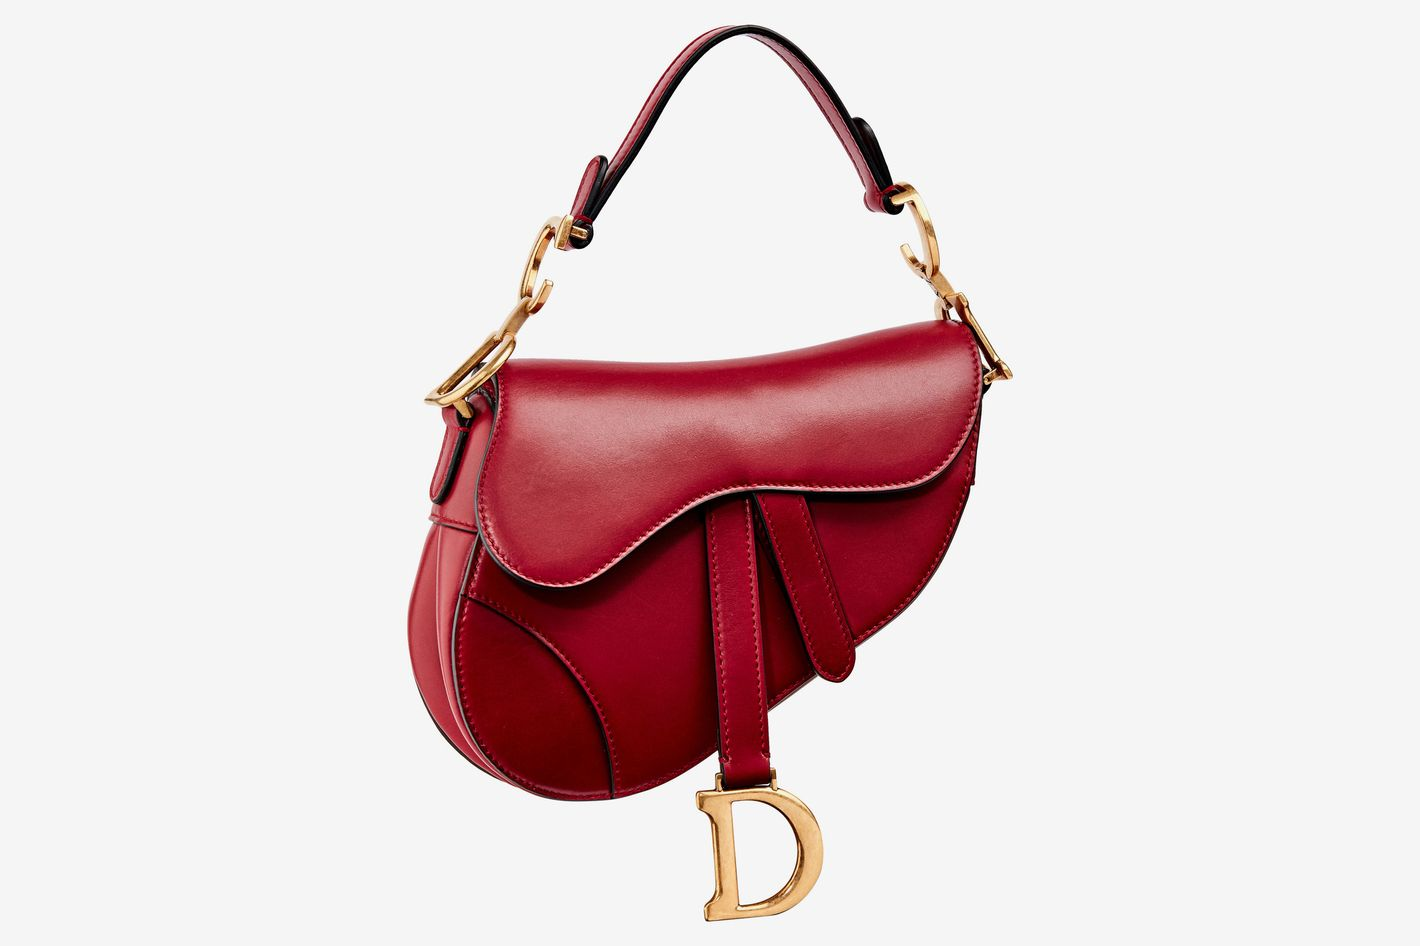 Dior Saddle Bag In Red Calfskin